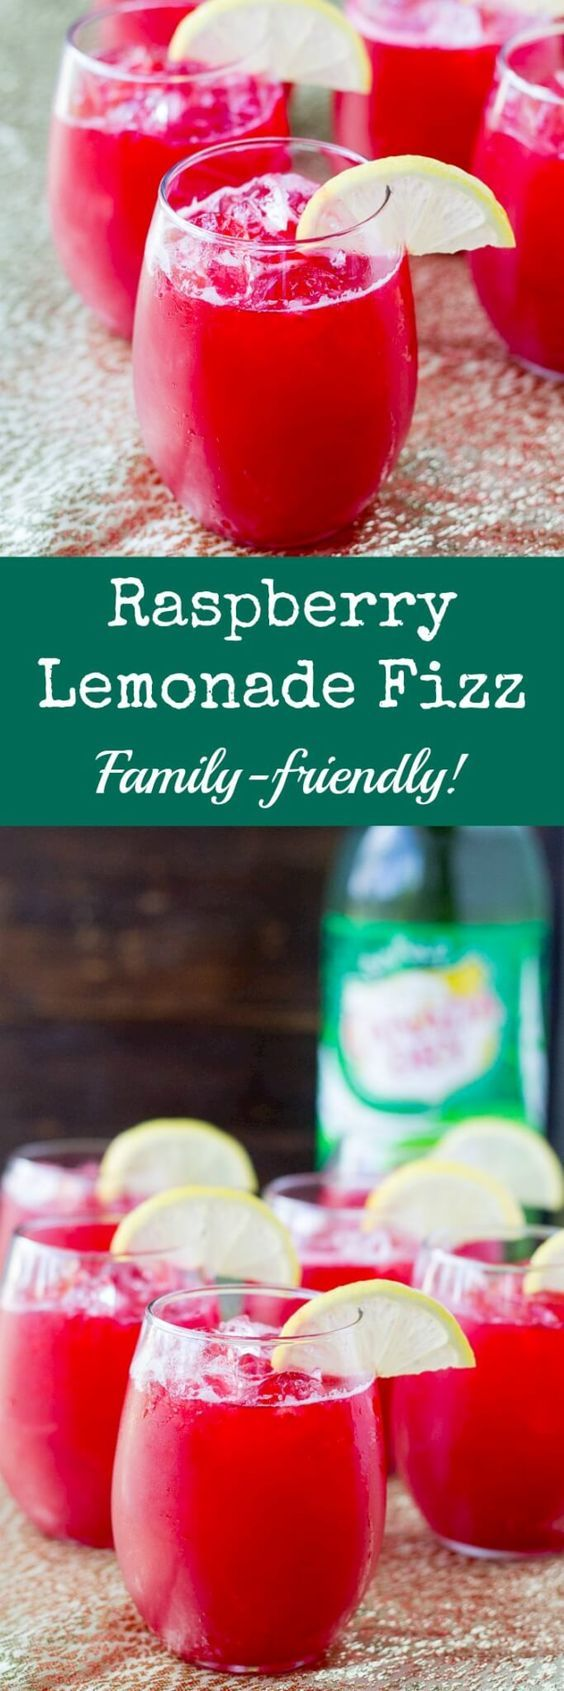 "Make Raspberry Lemonade Fizz the ""signature drink"" at your next party! It only takes 3 ingredients and everything can be made ahead. @culinaryhill"